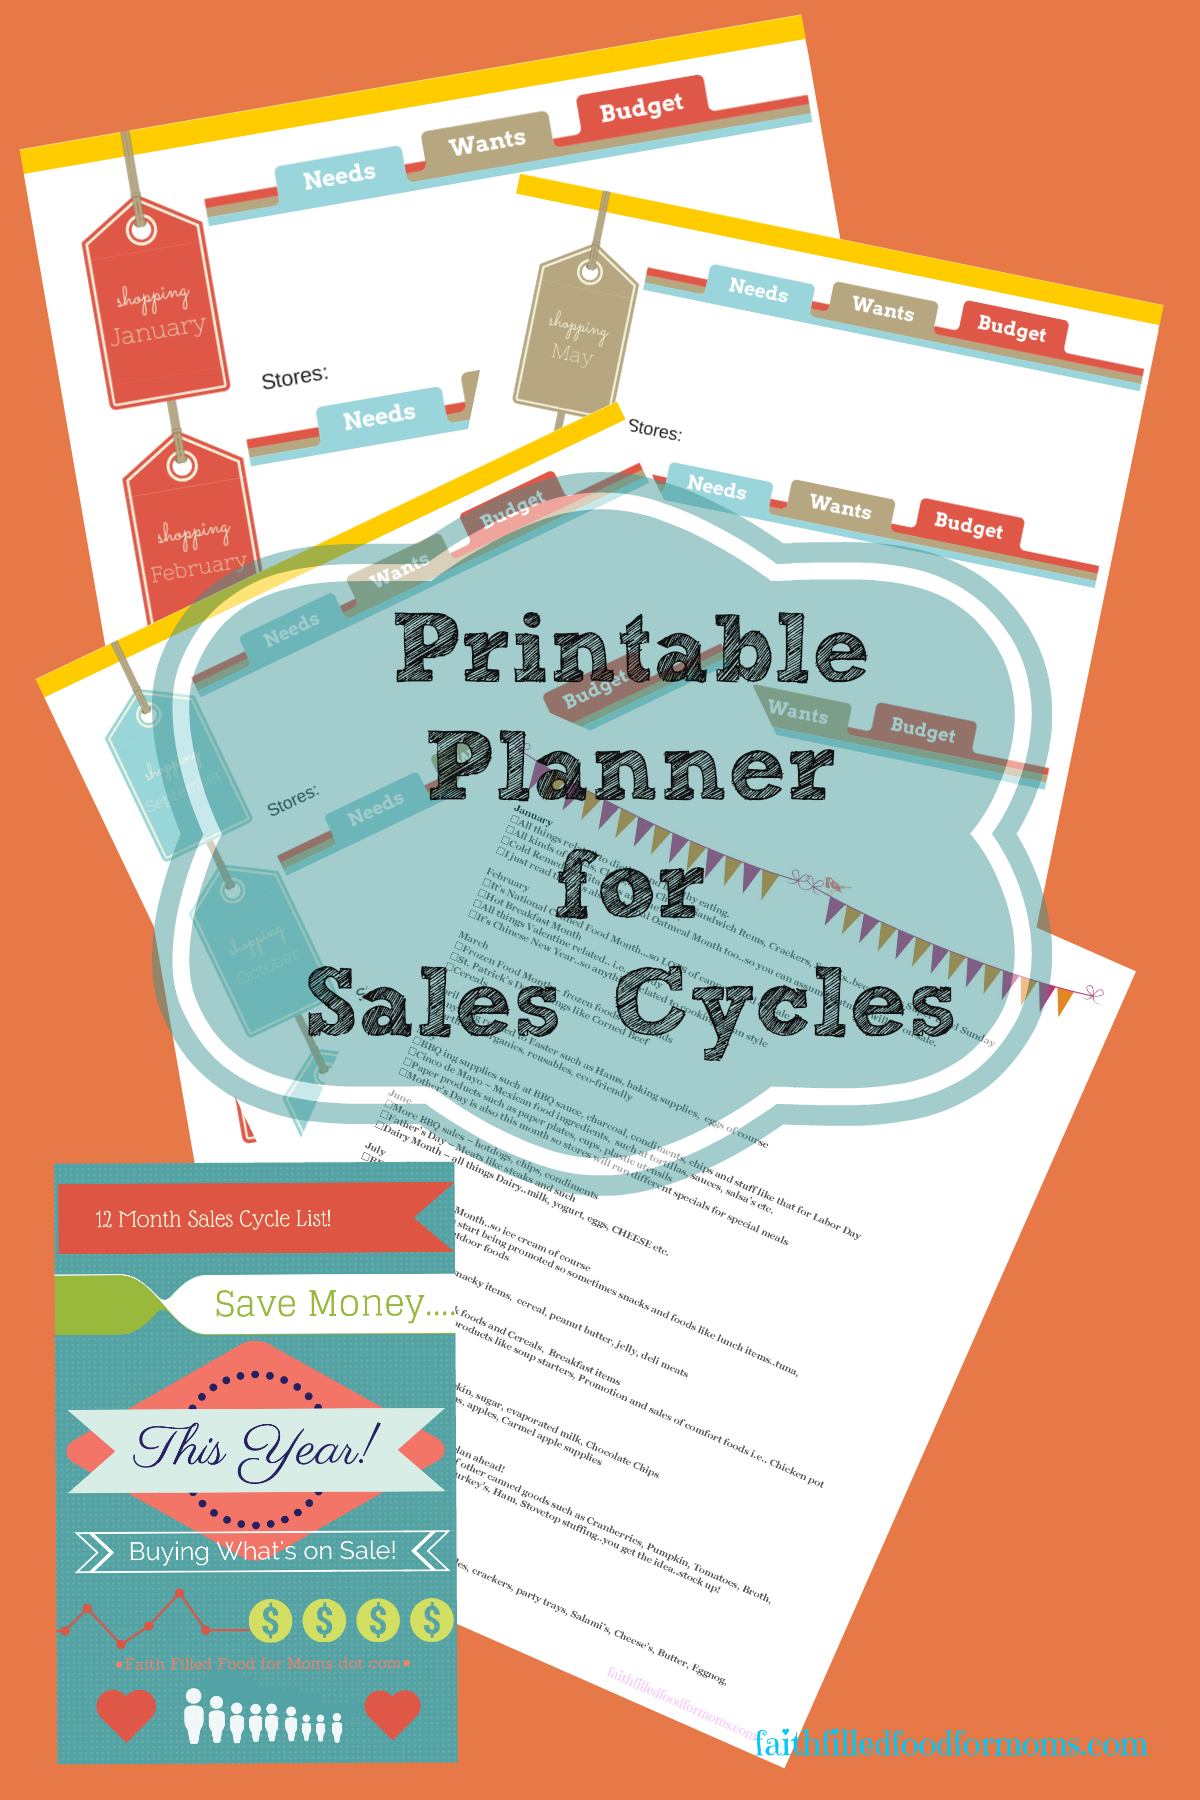 Save hundreds every year using tried and true sales cycles that all stores use to reduce inventory! Use the free printable to help you organize and plan your year for wise purchases for food, electronics, furniture etc.